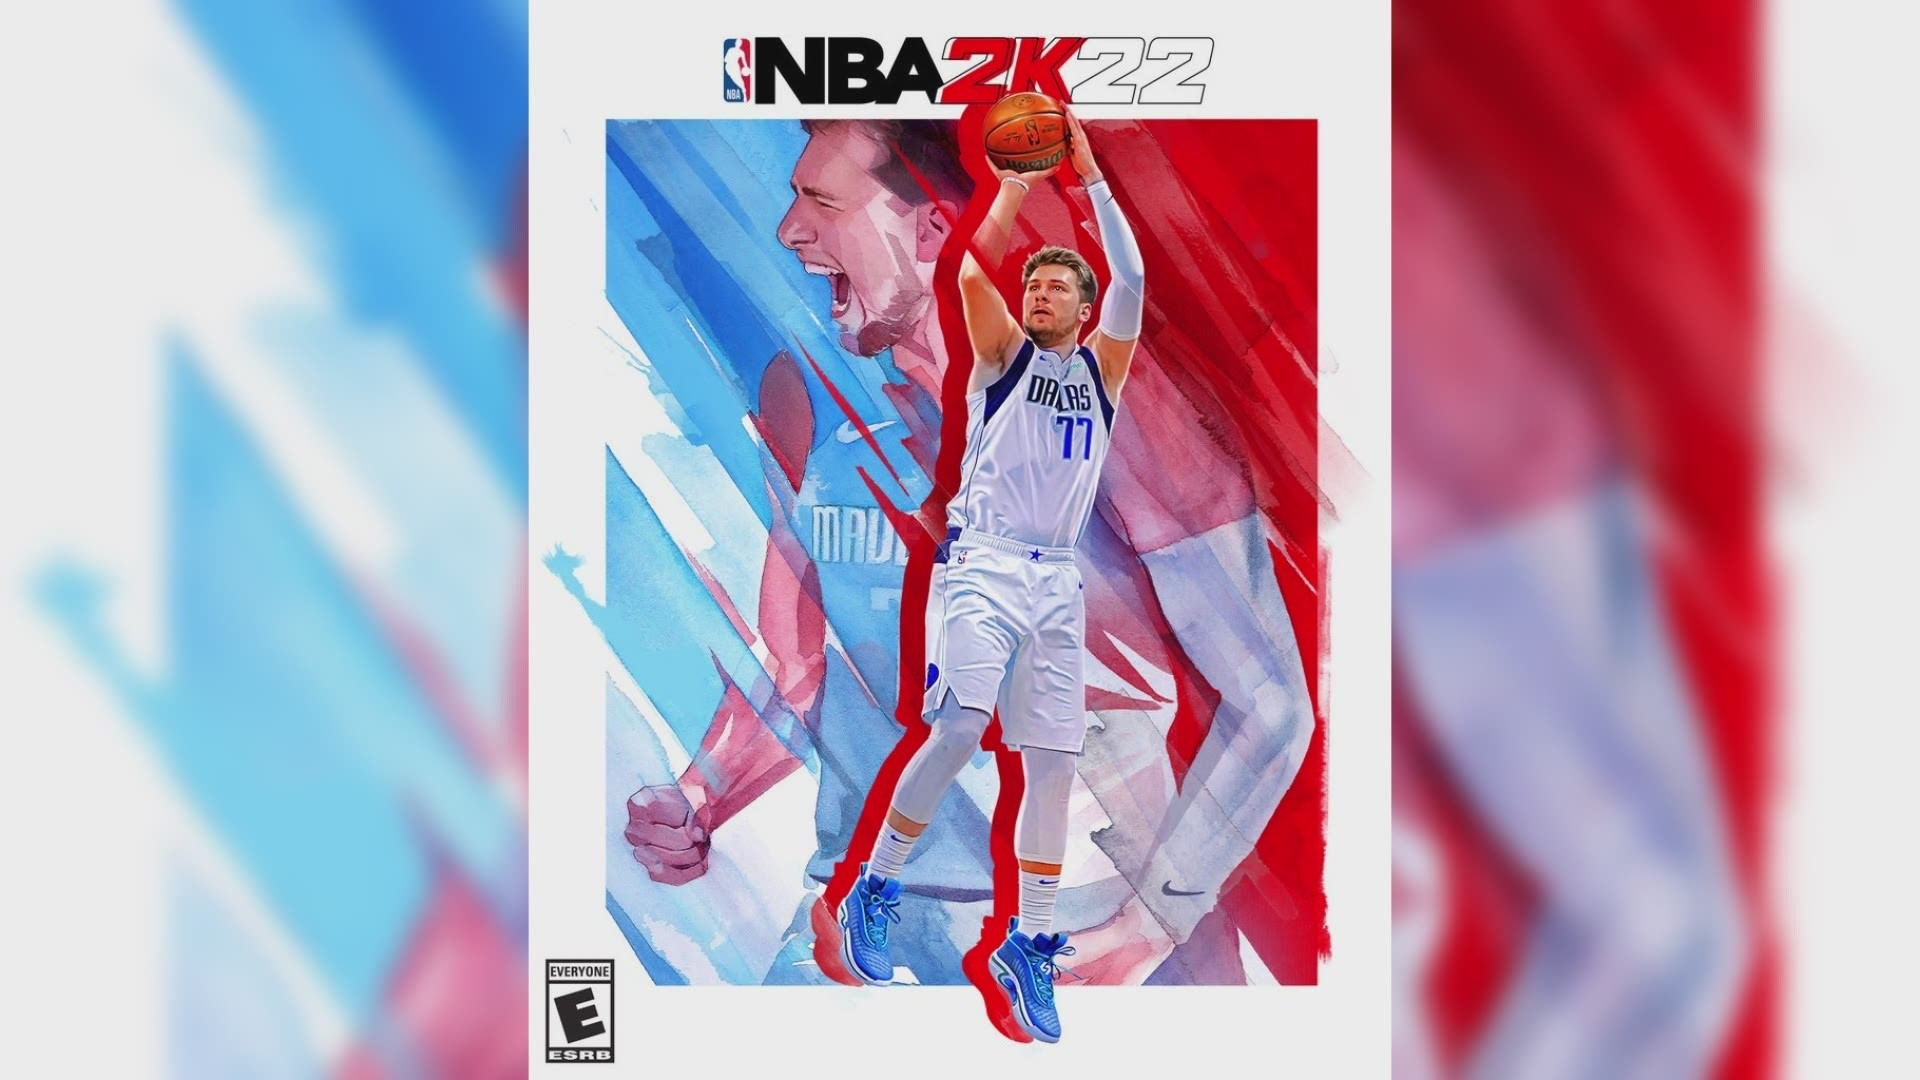 Nba 2k22 Luka Dirk And Candace Parker Grace Cover Wfaa Com